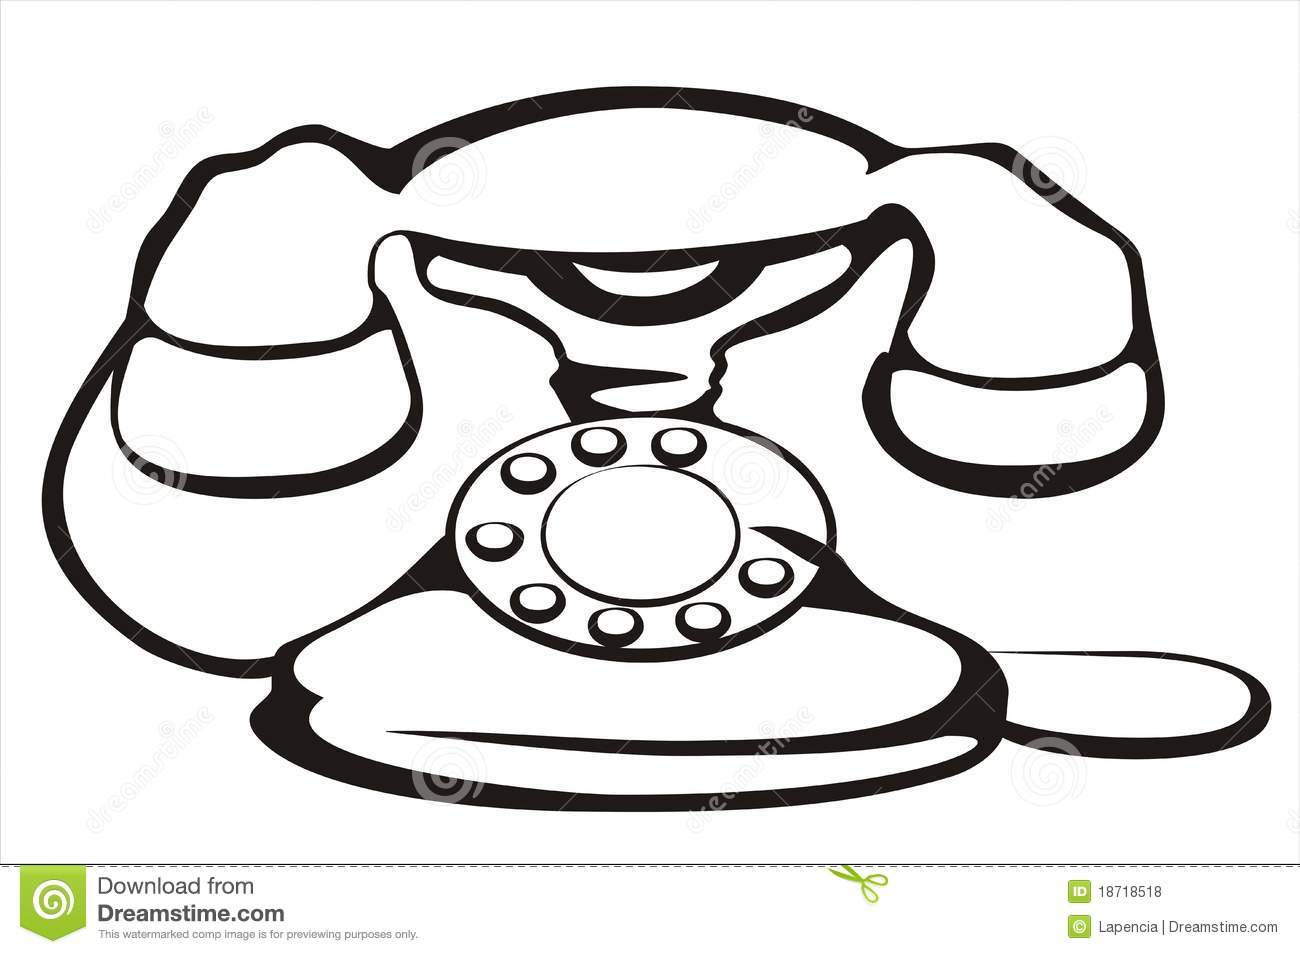 Telephone Symbol Images & Pictures - Becuo